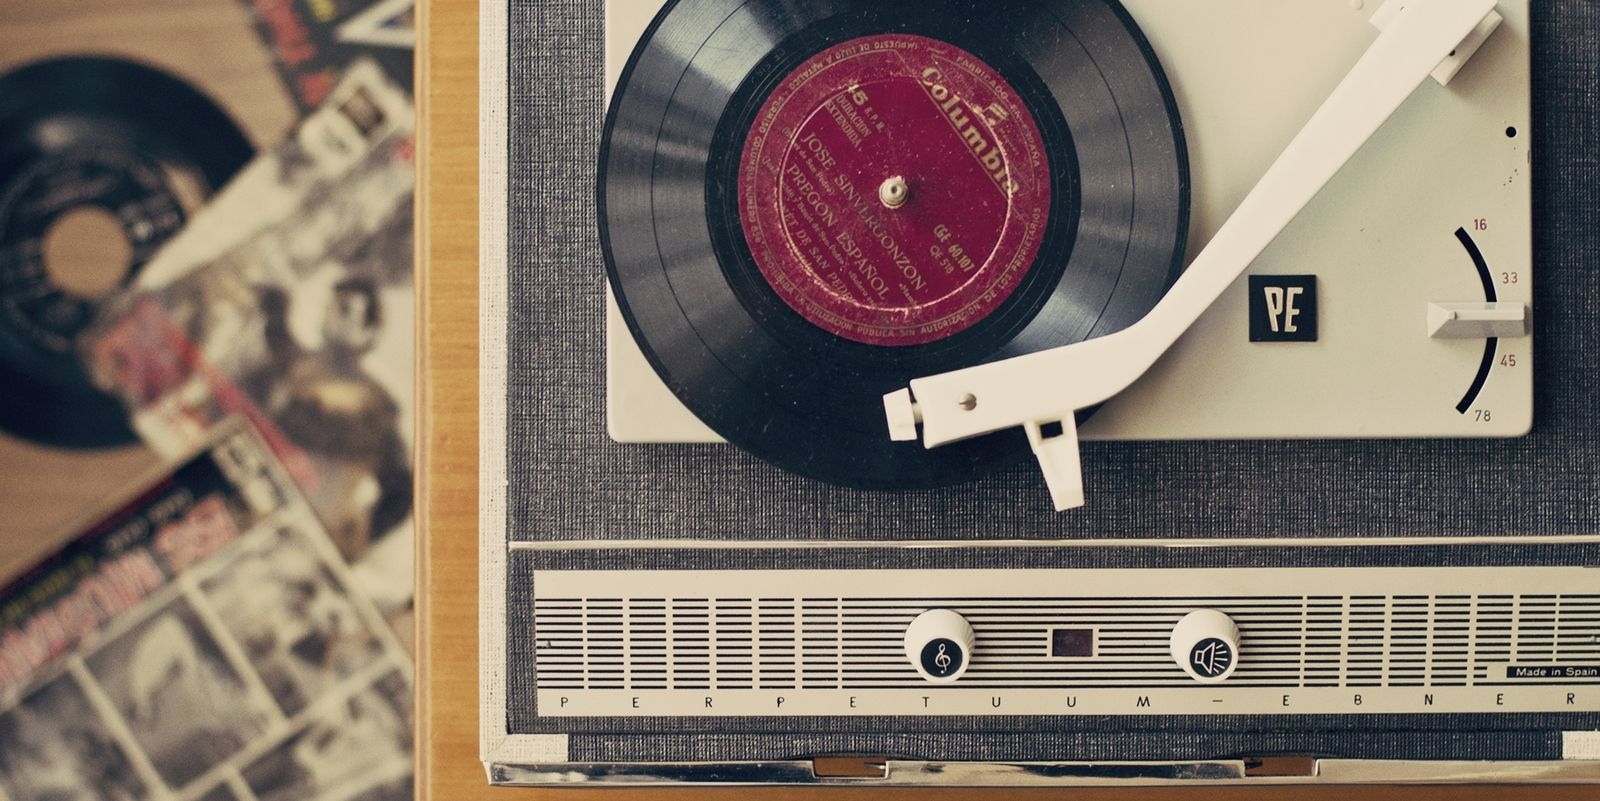 These Are The 10 Most Valuable Vinyl Records You Could Own Valuable Vinyl Records Vinyl Records Old Vinyl Records